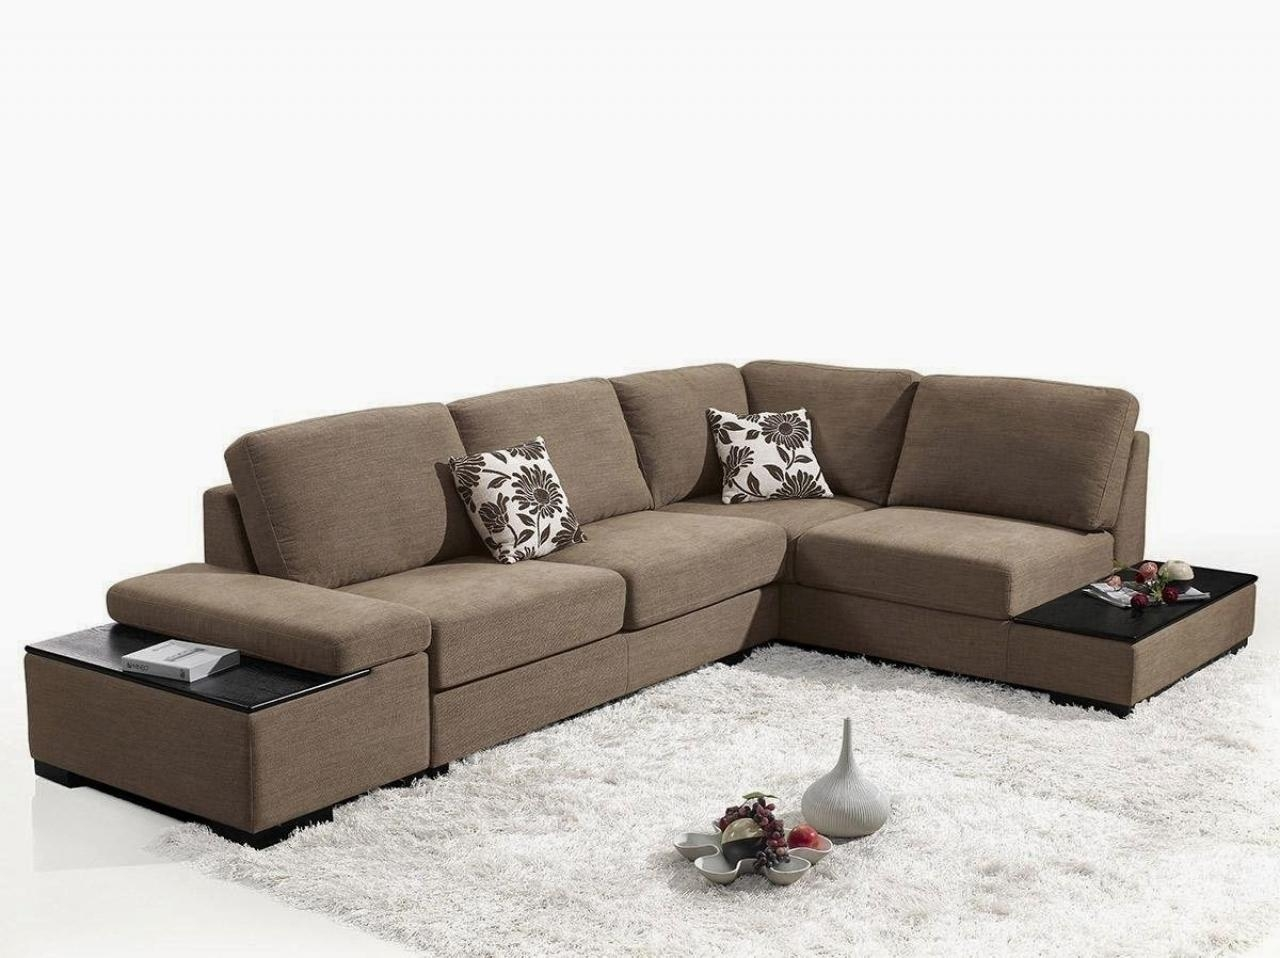 Awesome Sectional Sofa Fold Out Bed – Sectional Sofas And Couches Regarding Pull Out Sectional (View 7 of 20)